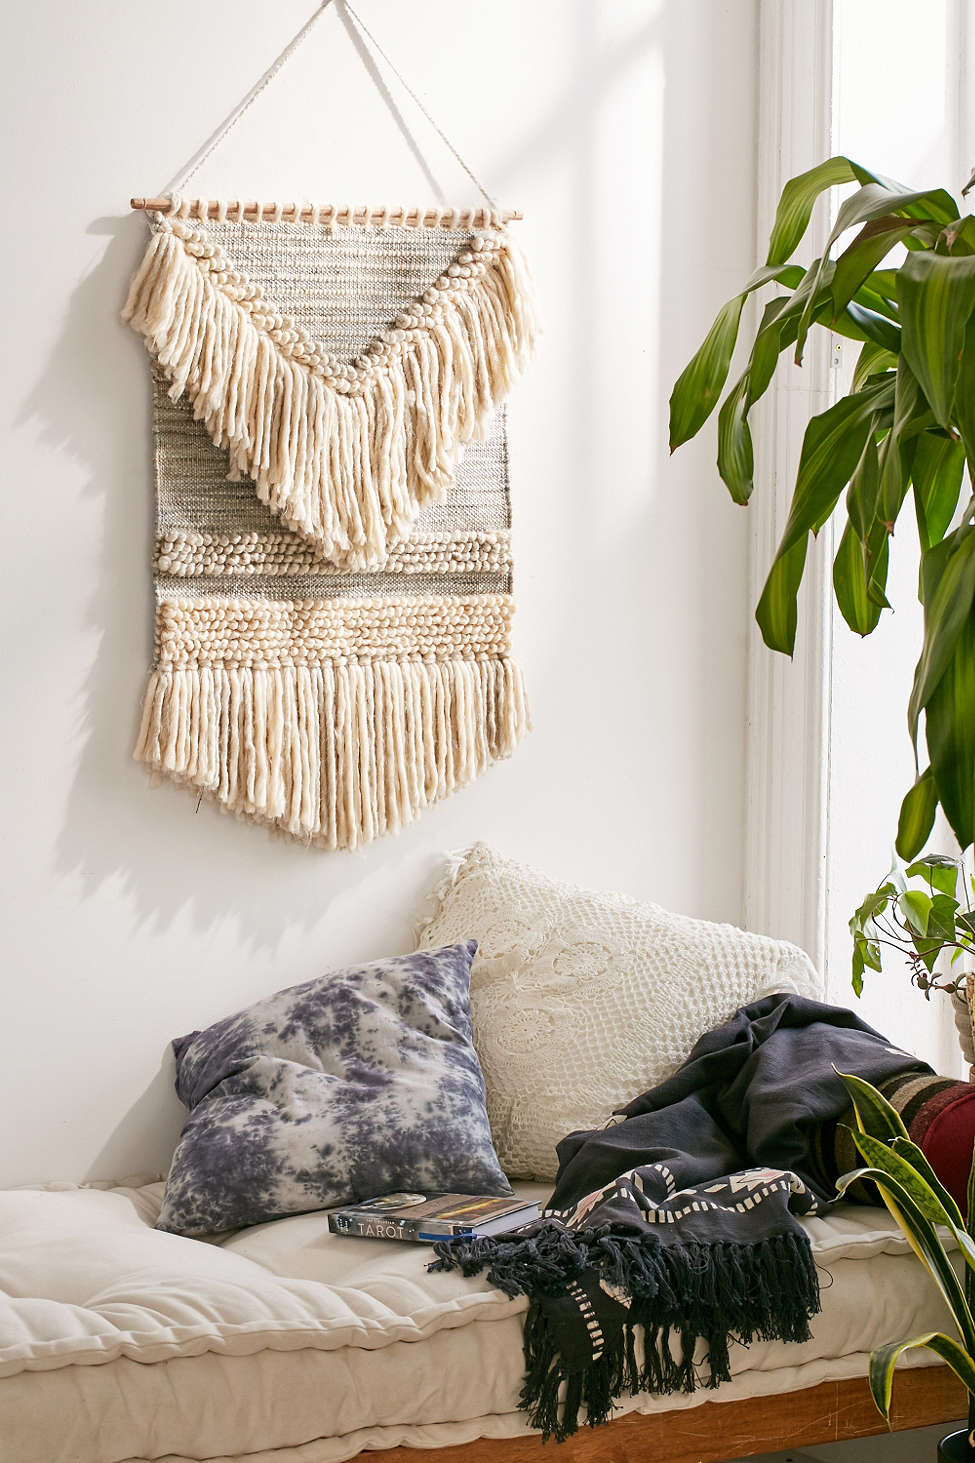 wall hangings from urban outfitters